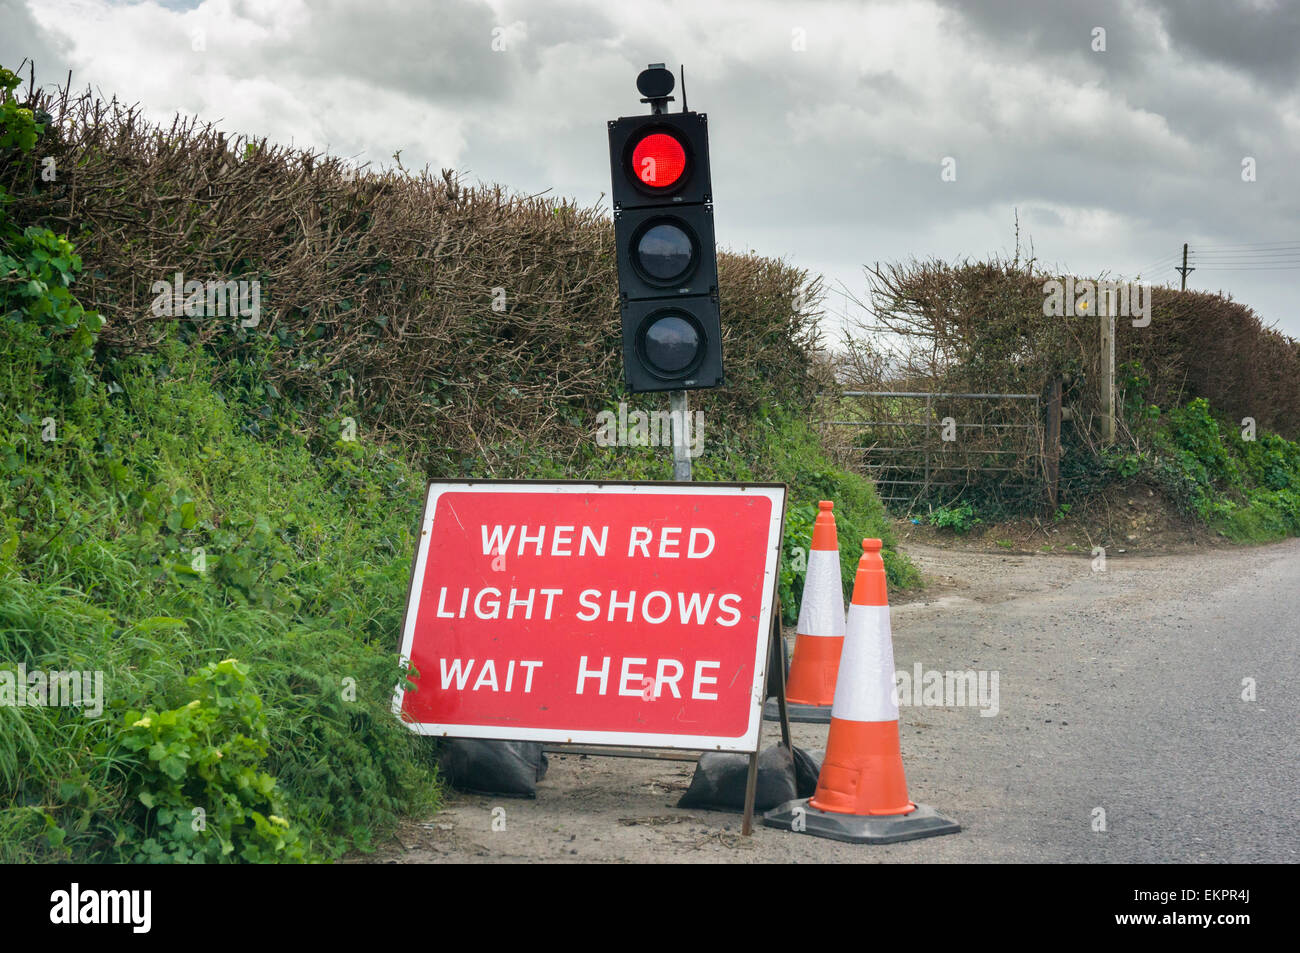 Traffic lights on a rural country road, England, UK - Stock Image